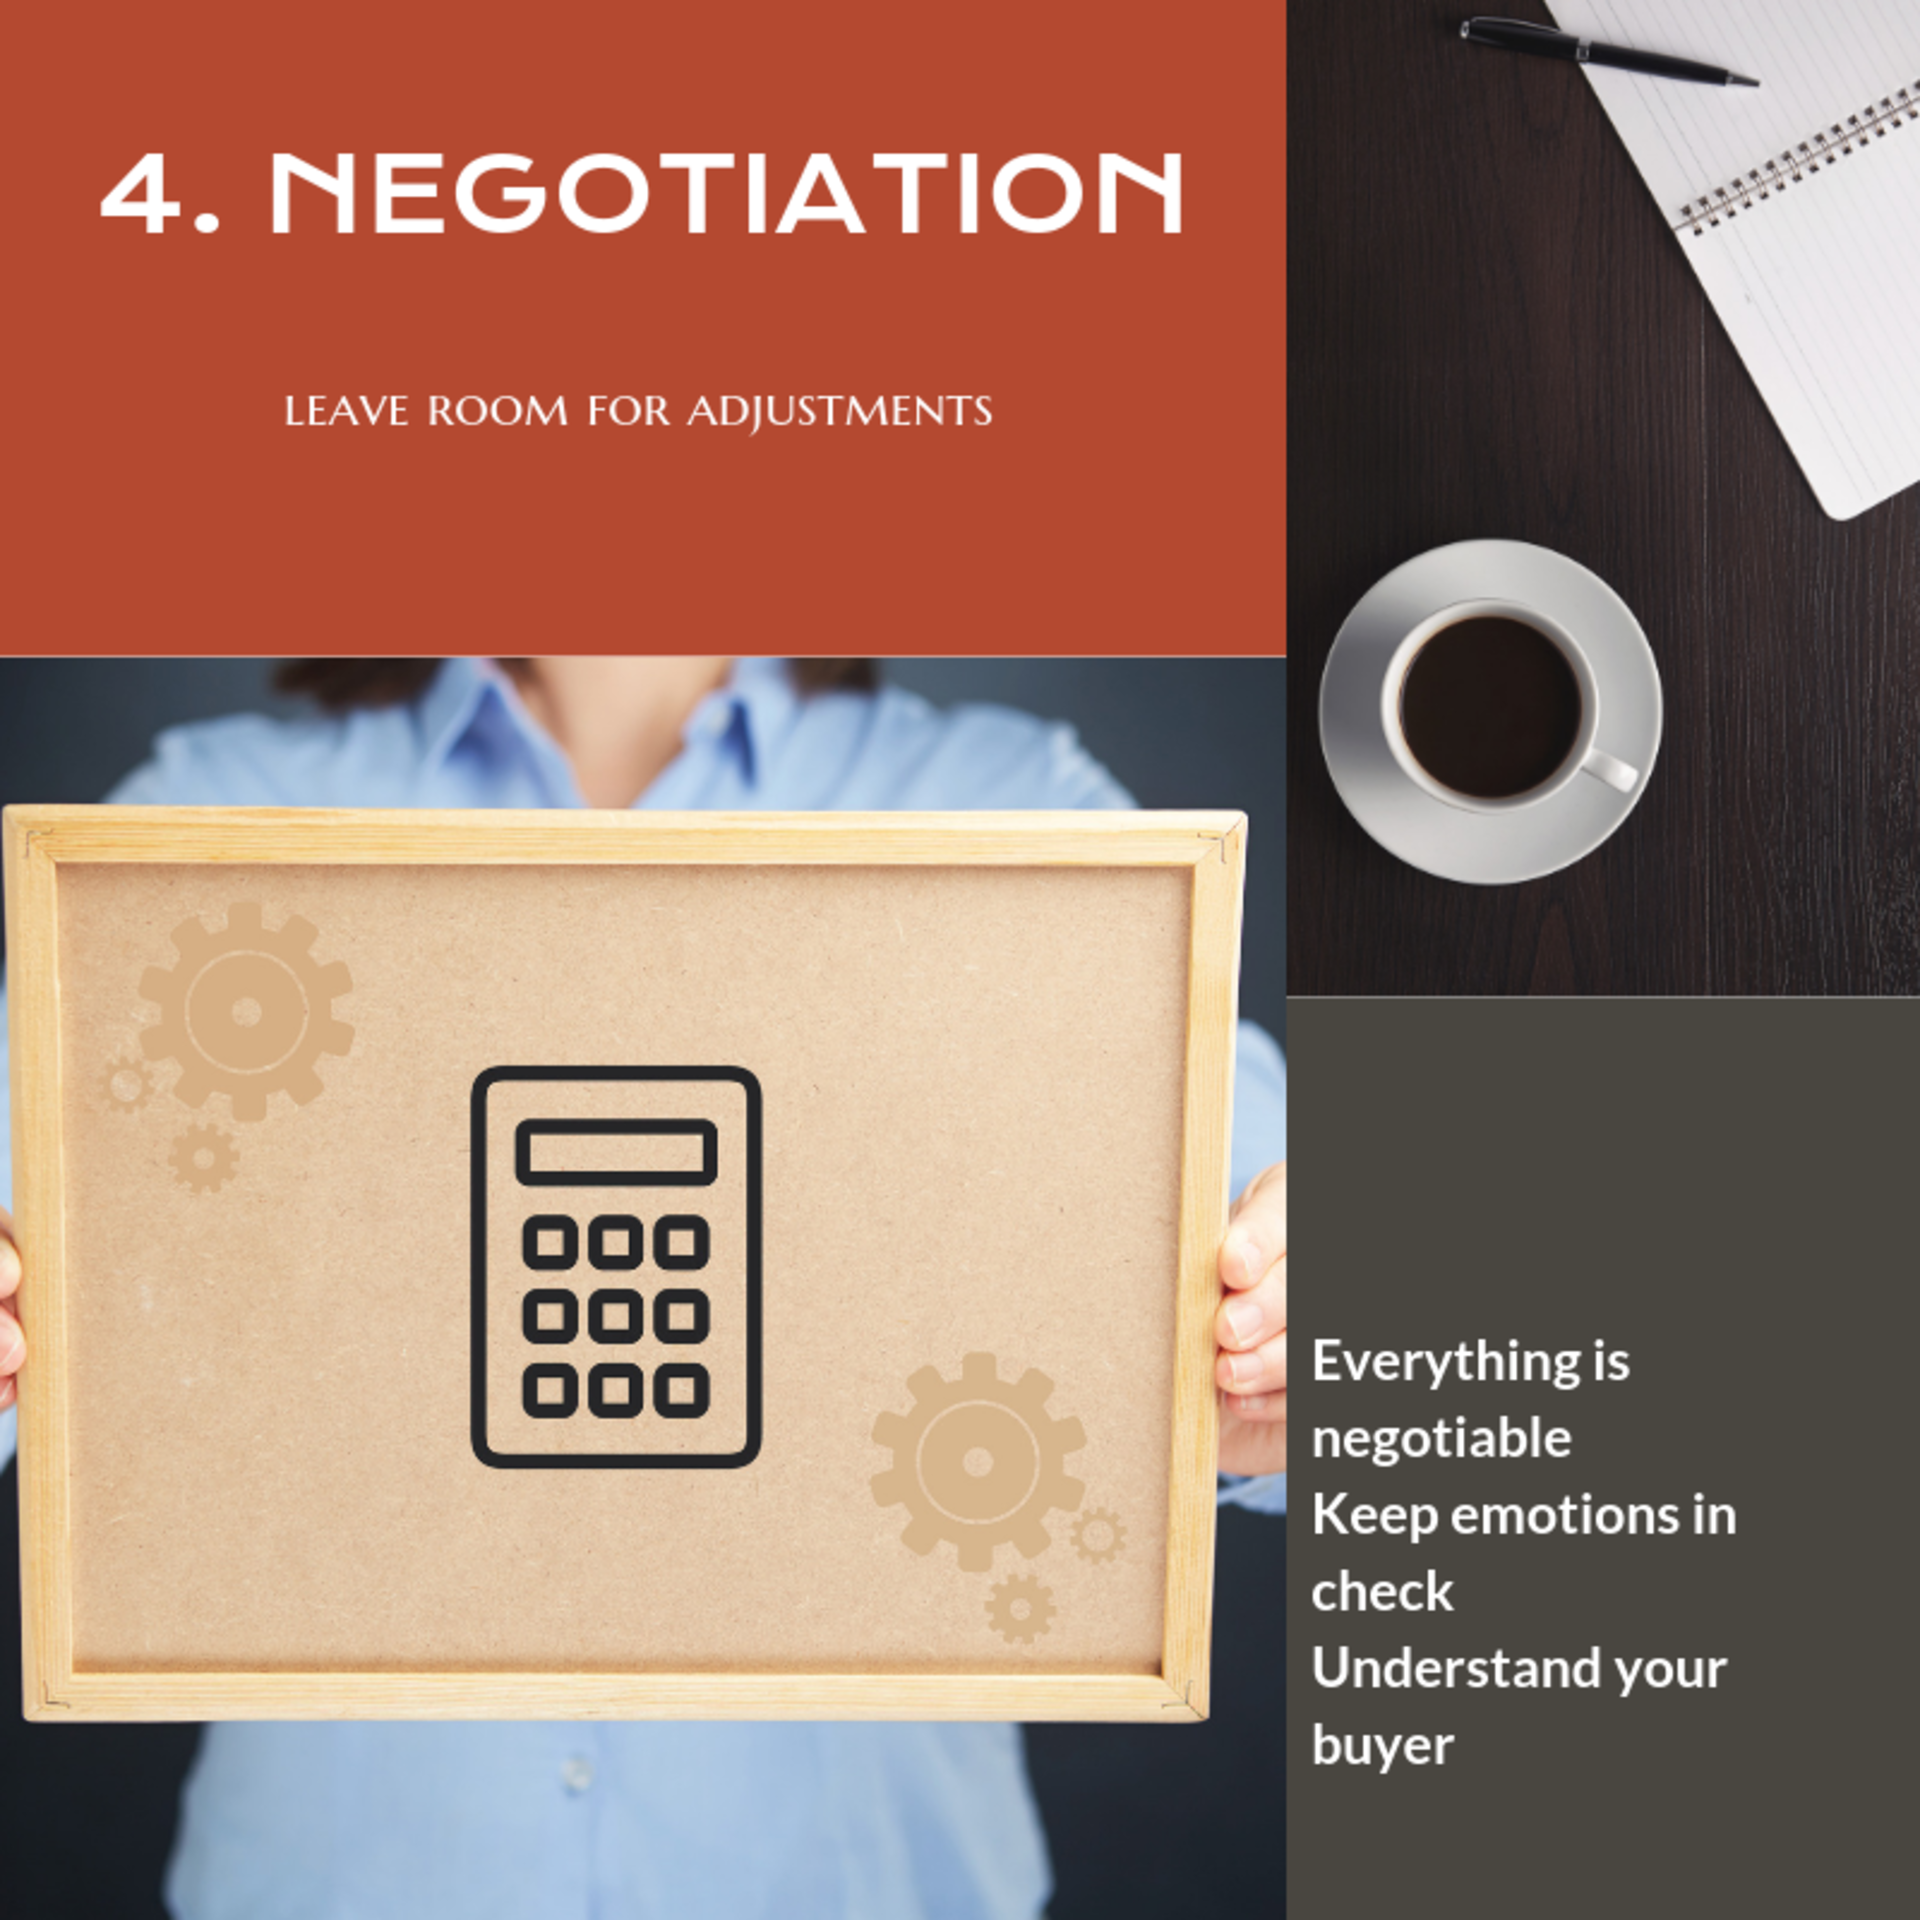 MAIN Considerations for Sellers: NEGOTIATION.